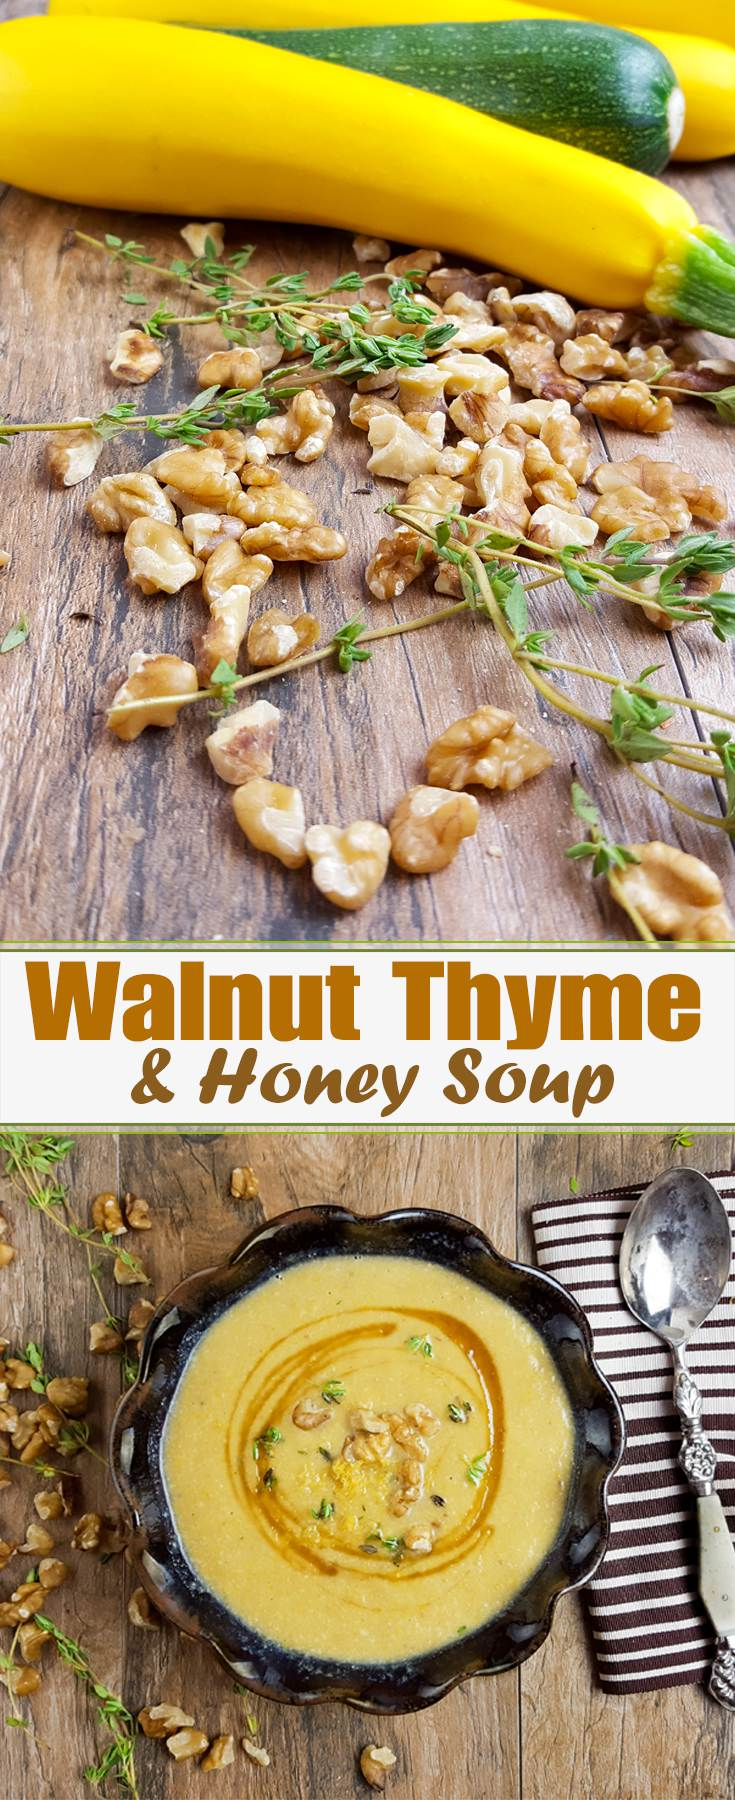 A sophisticated soup that takes so little effort, you'll be making this on weeknights. The creamy walnut soup is perfect with a drizzle of honey.